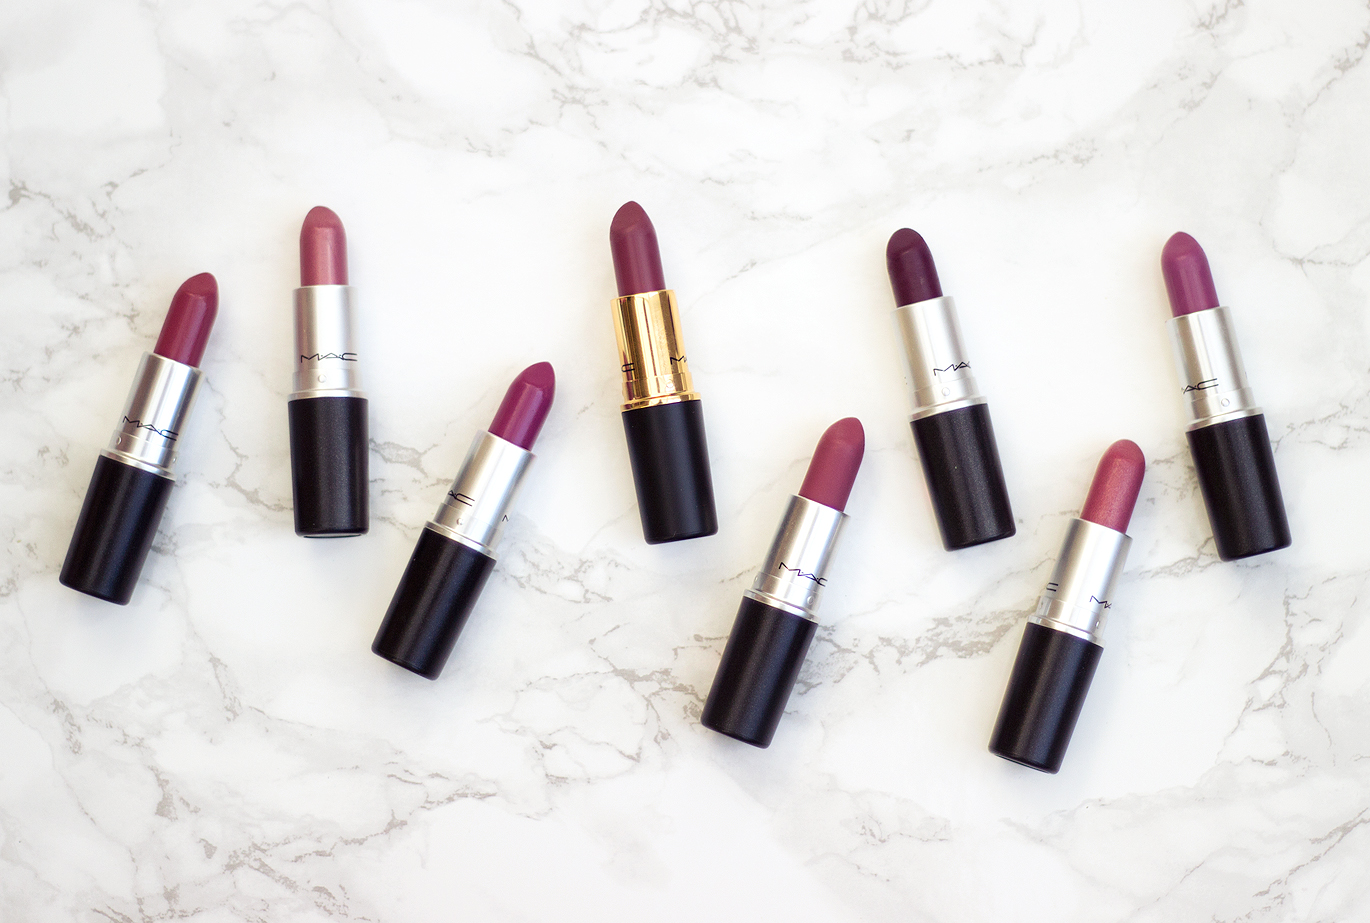 MAC Lipstick Collection: Berry and Purple Lipsticks and Swatches